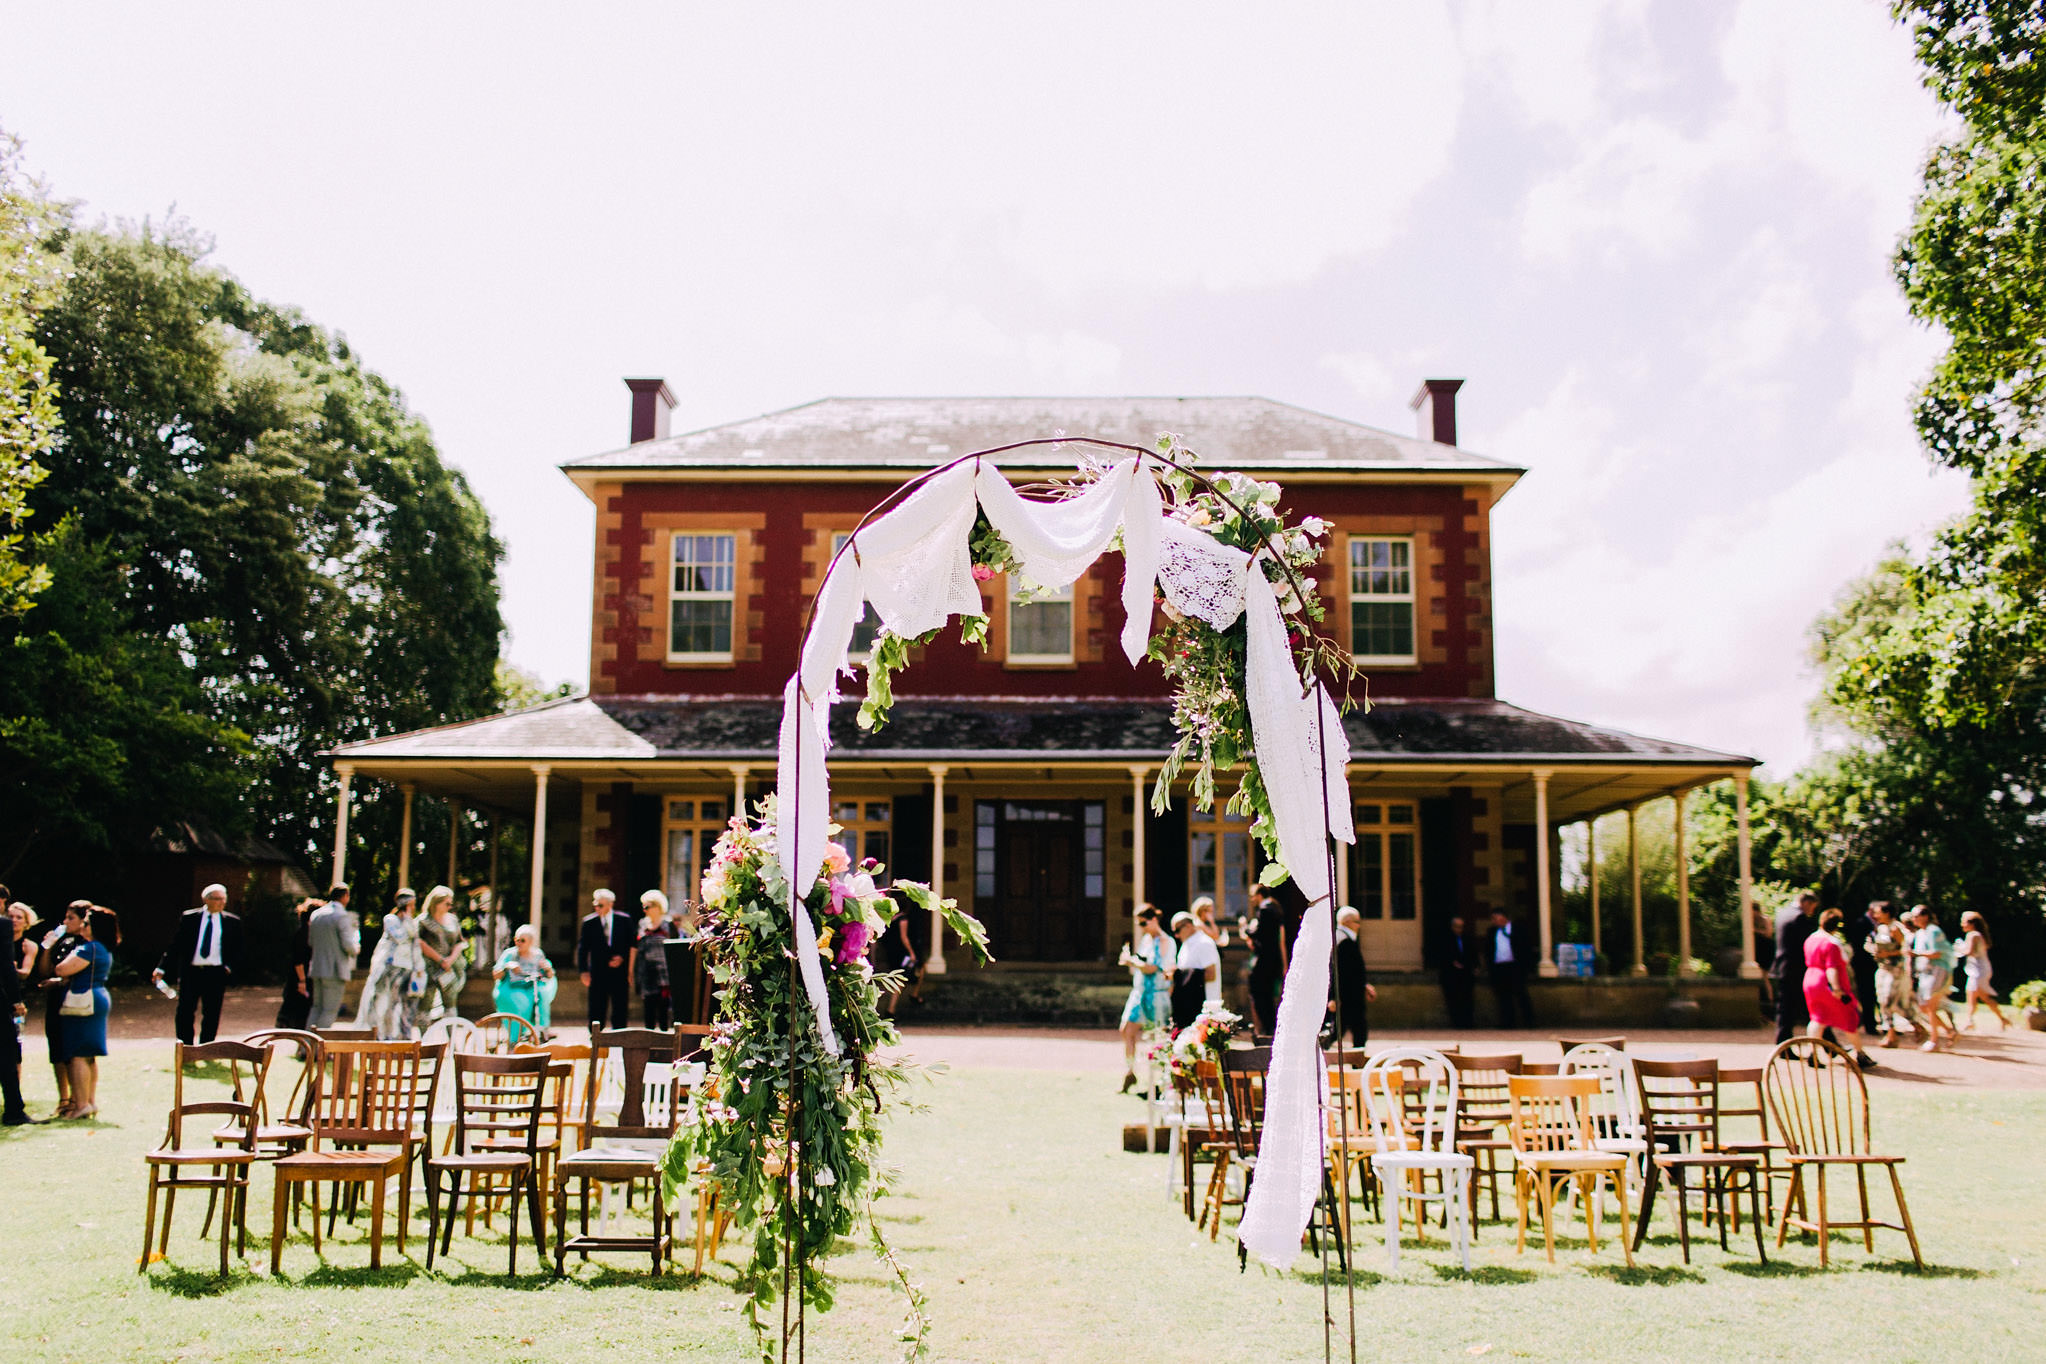 TocalHomestead_WeddingPhotography_LaurenAnnePhotography-1039.jpg